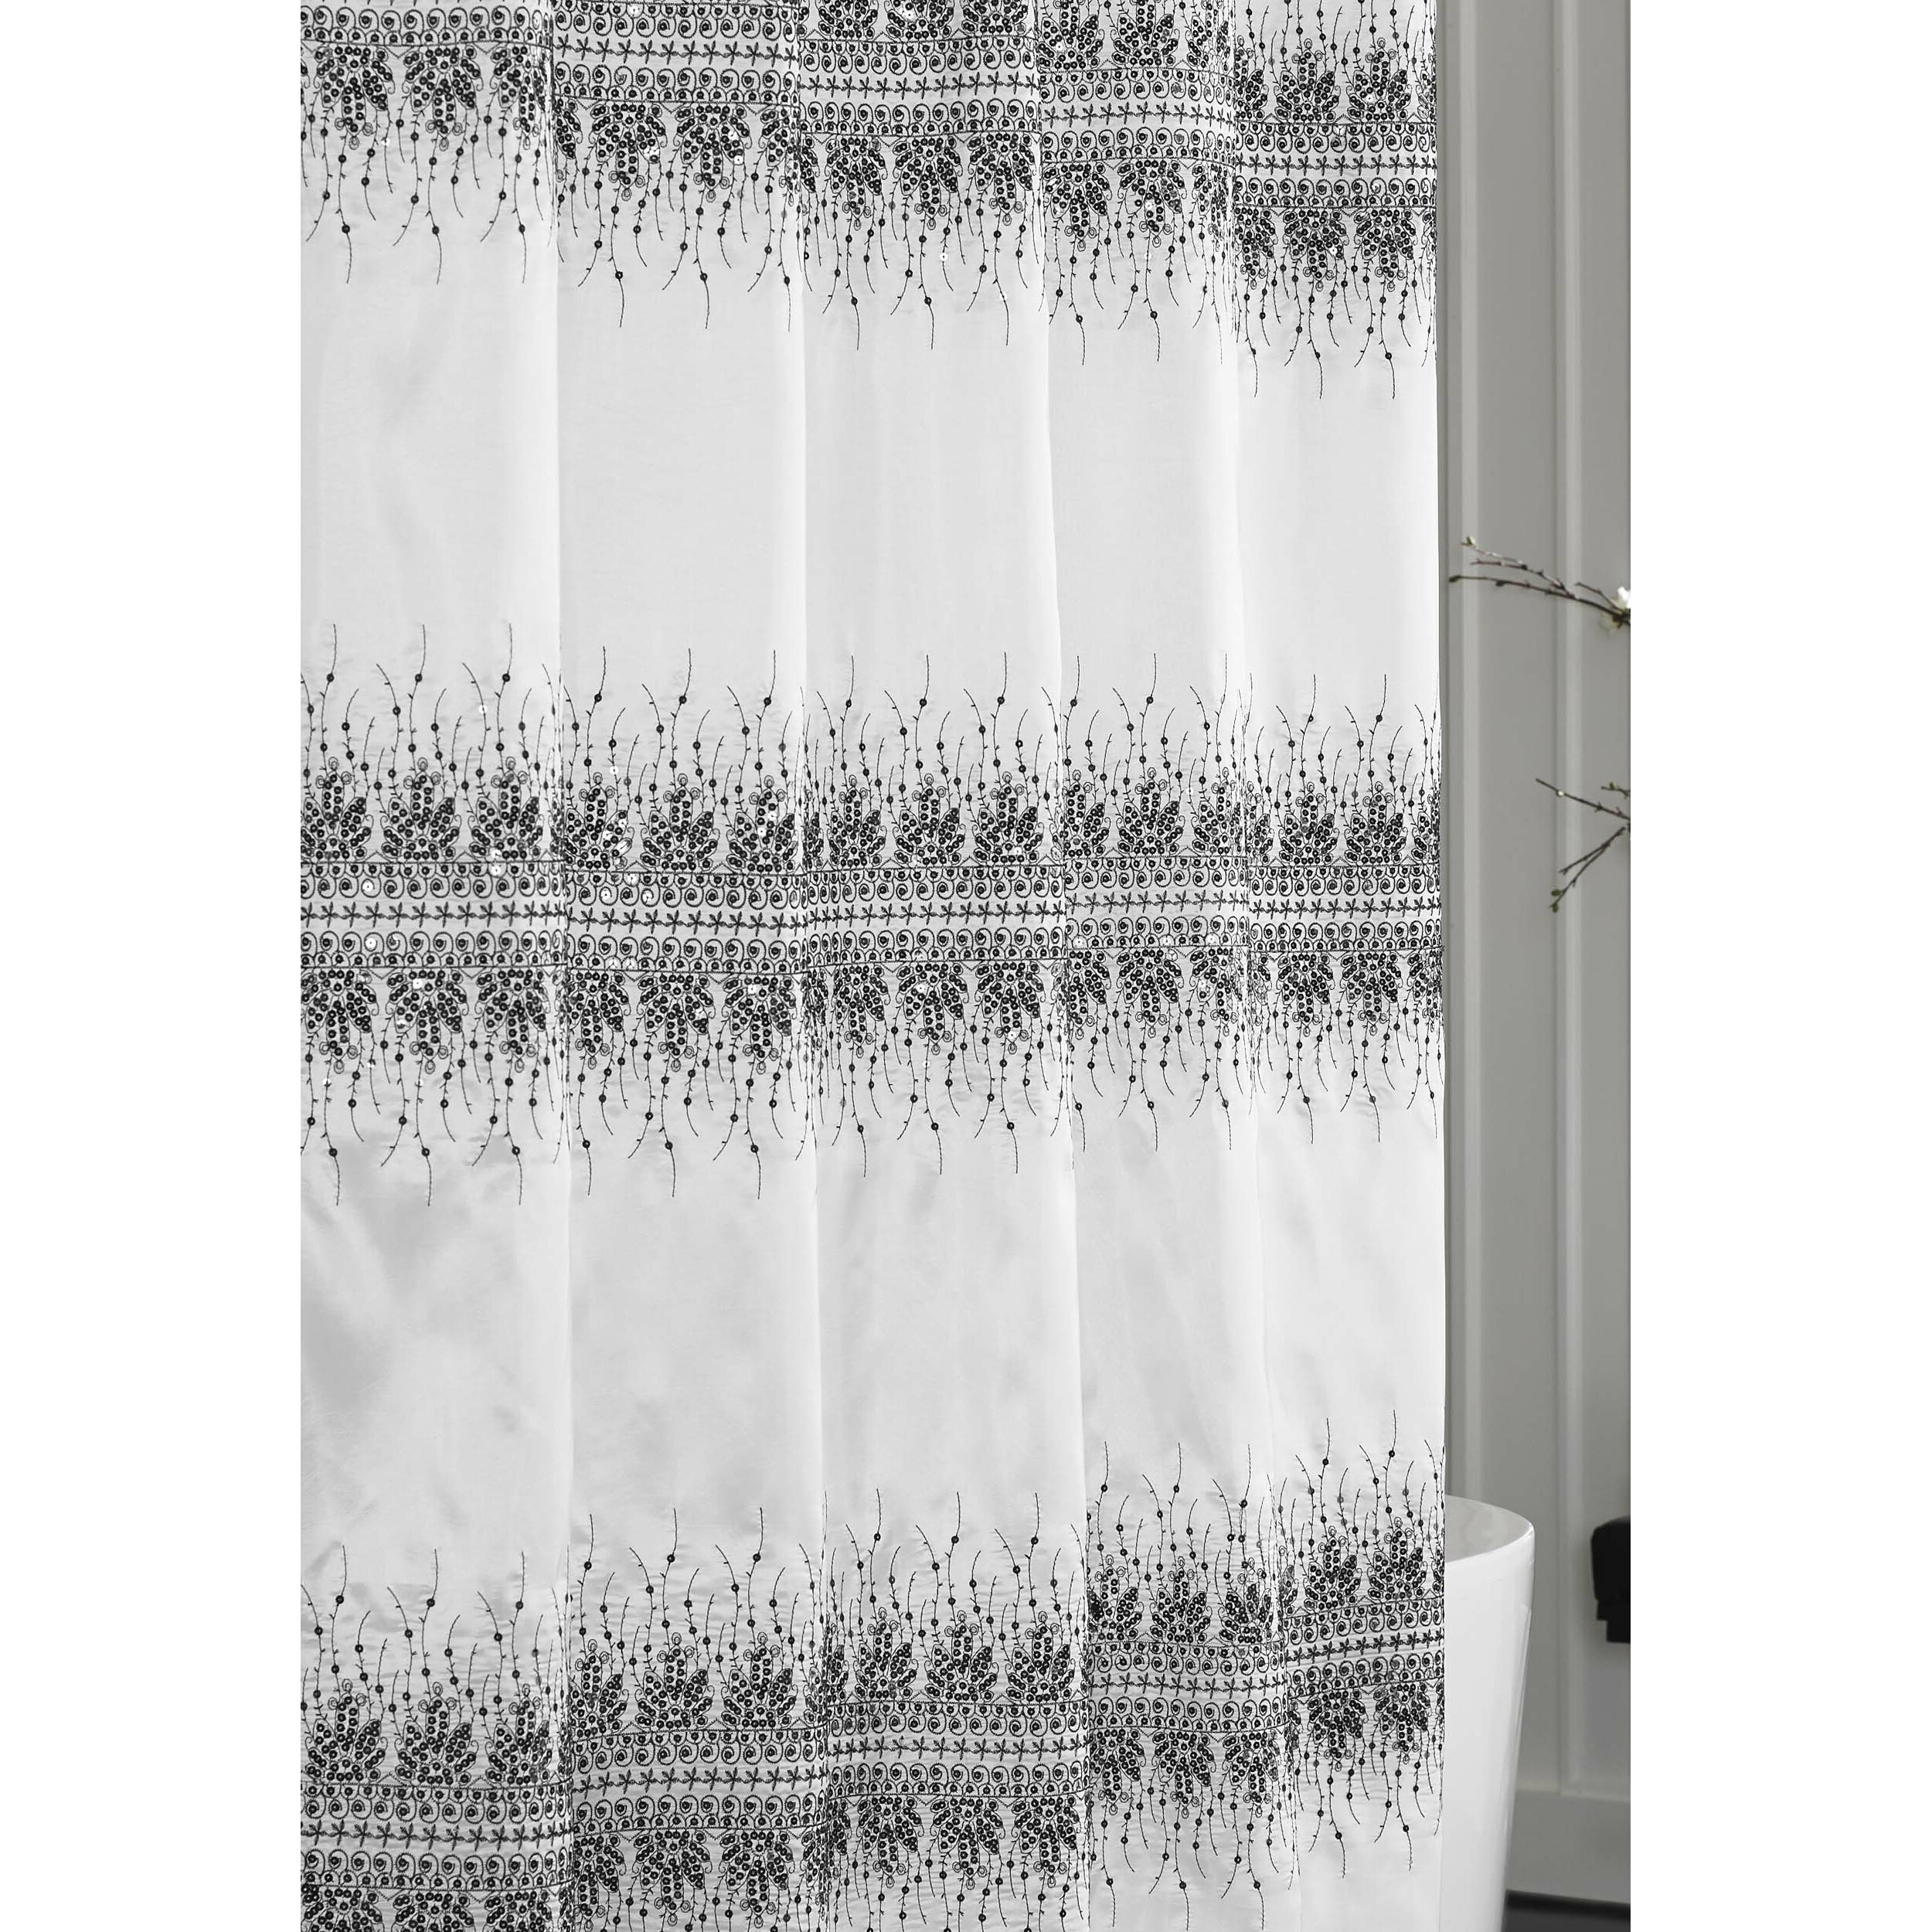 Black and white hello kitty shower curtain - Black And White Hello Kitty Shower Curtain